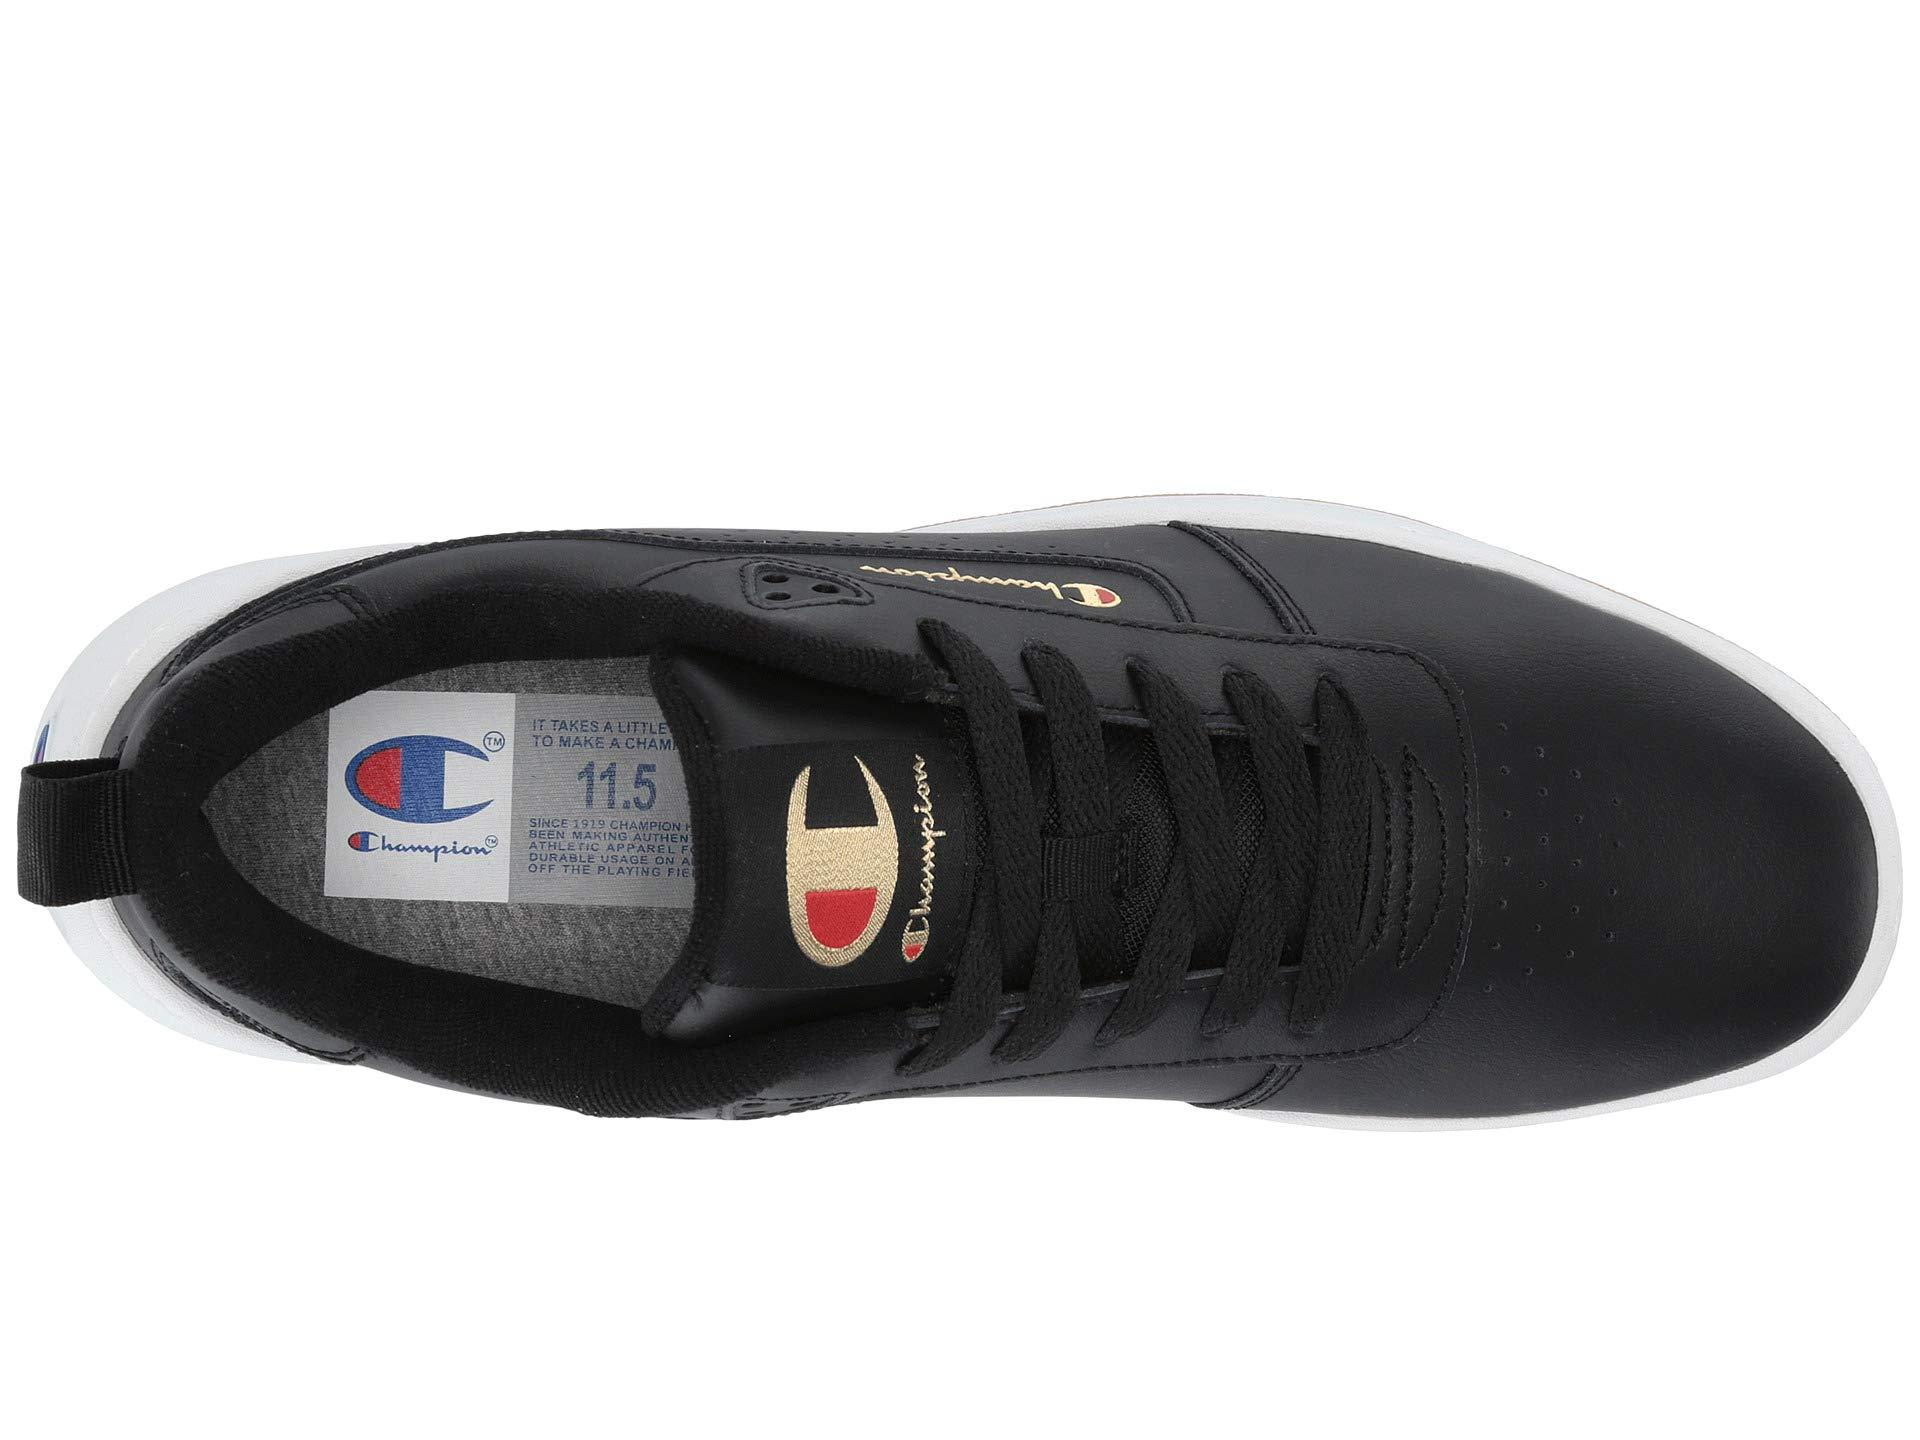 84e92d9049b Champion - Super C Court Classic Leather (black) Men s Classic Shoes for Men  -. View fullscreen